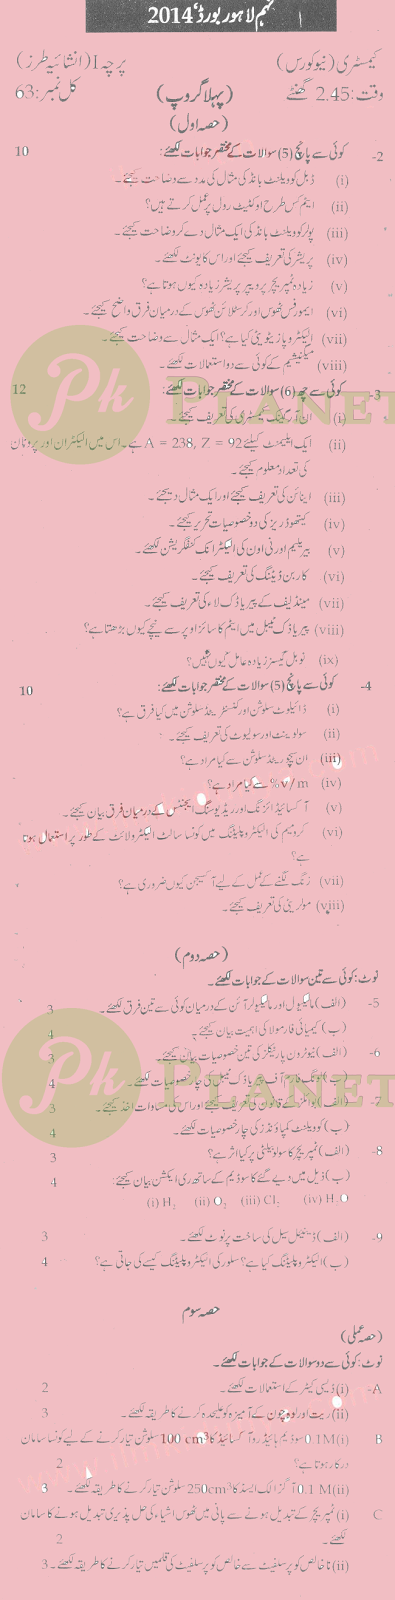 Past Papers of 9th Class Lahore Board Chemistry 2014